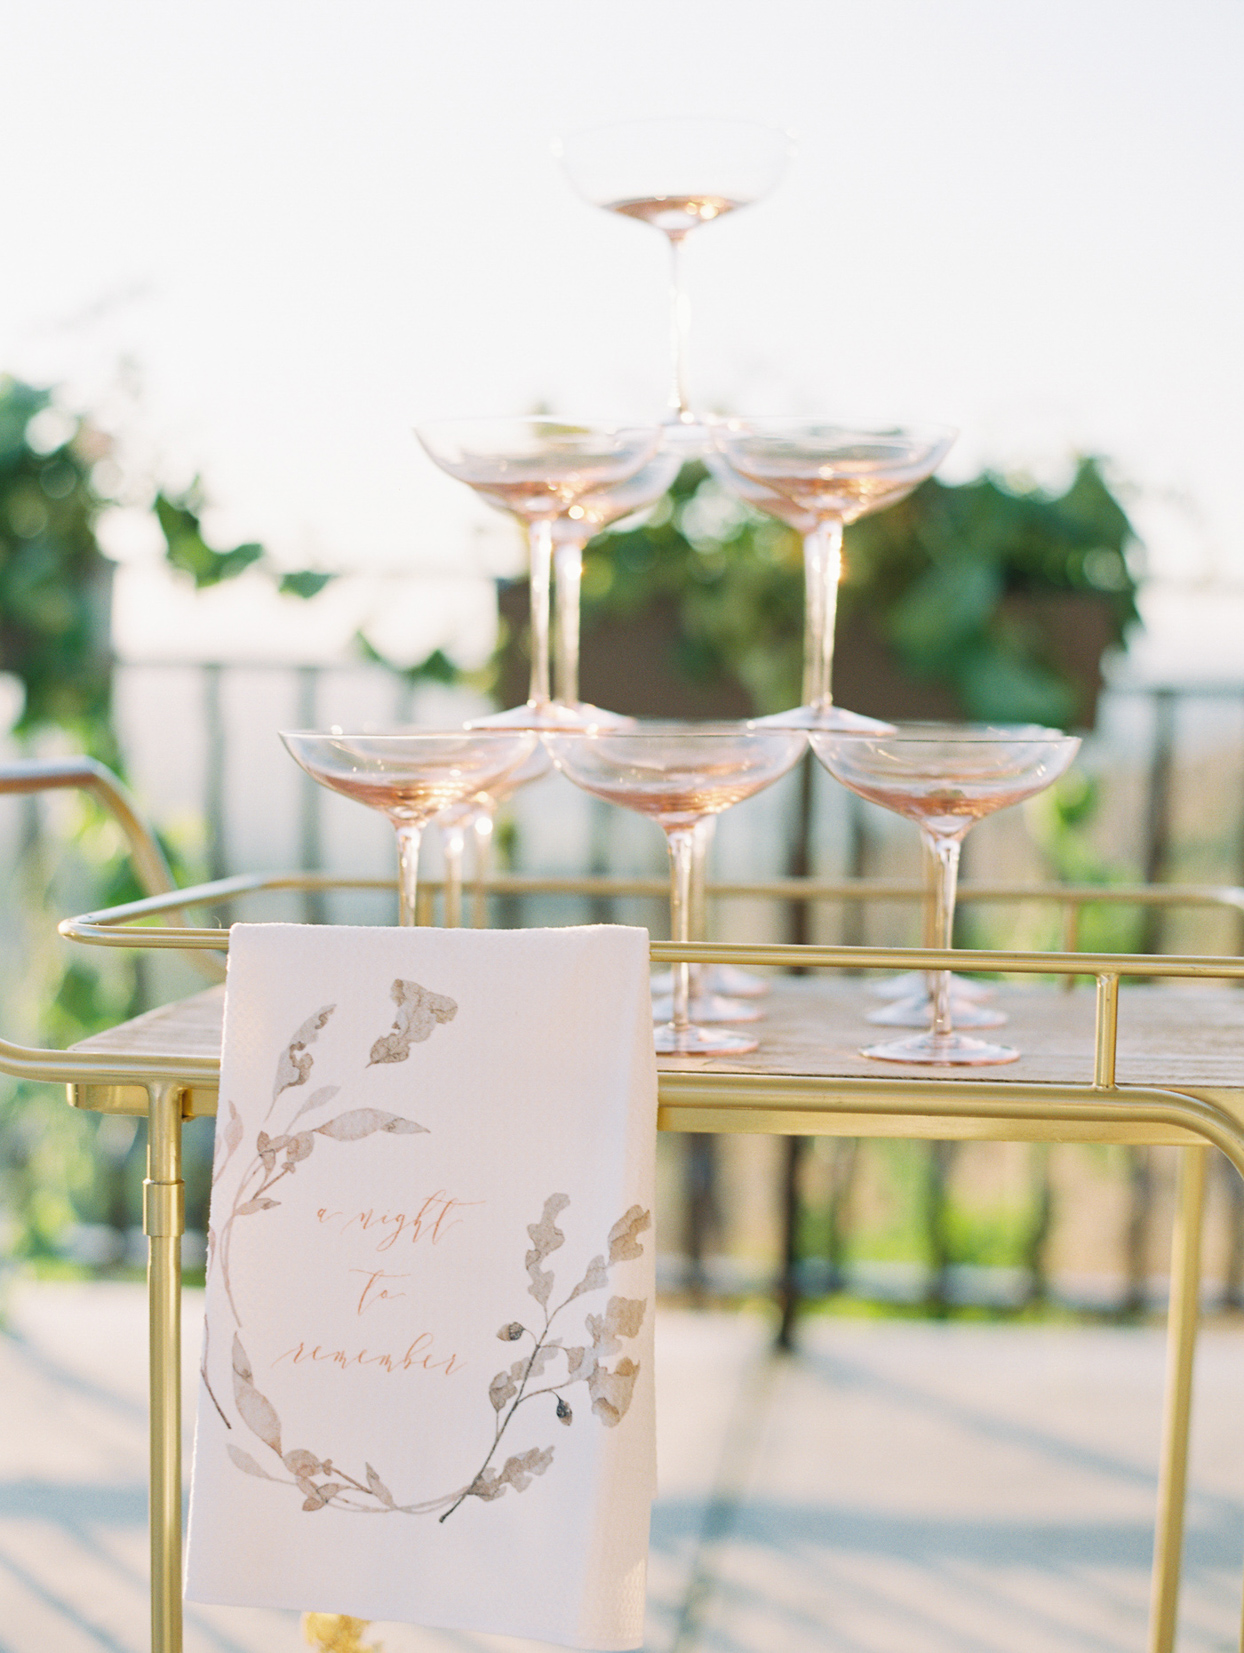 champagne tower on gold cart with calligraphy sign